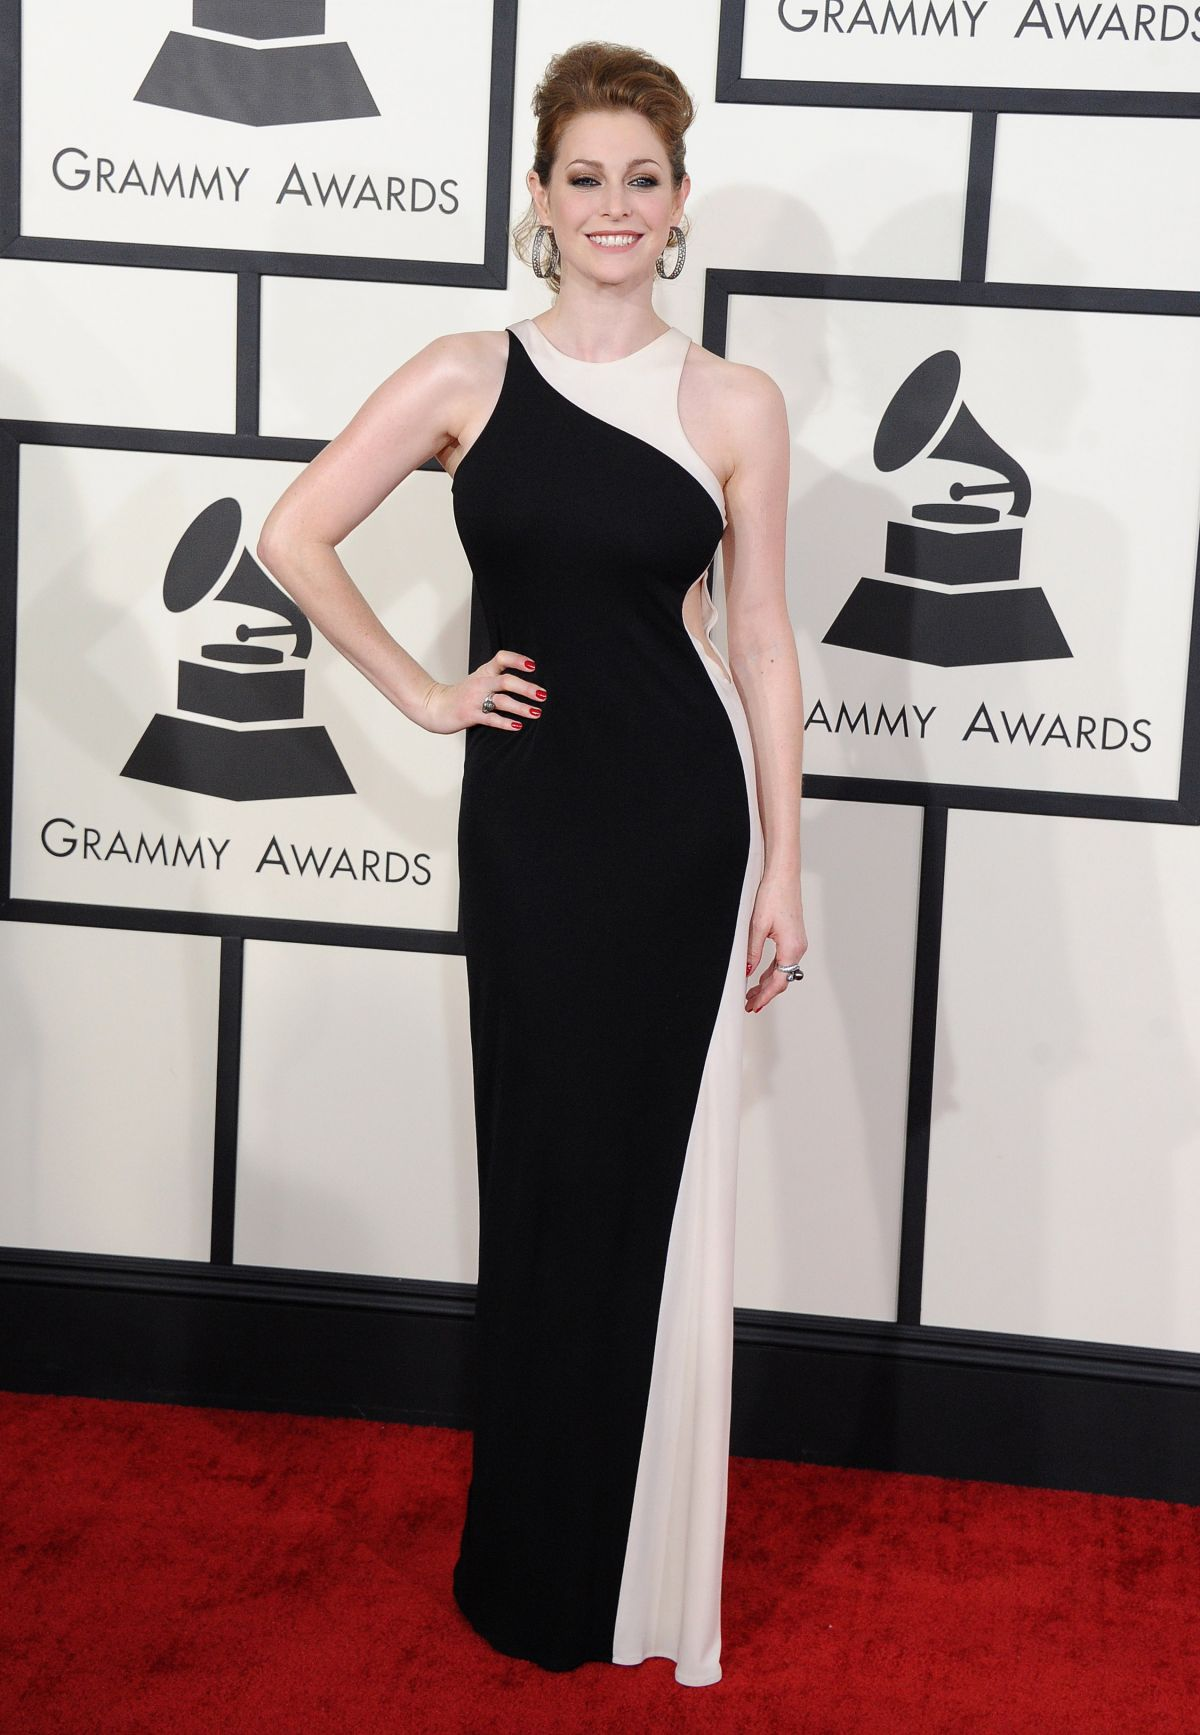 ESME BIANCO at 2014 Grammy Awards in Los Angeles